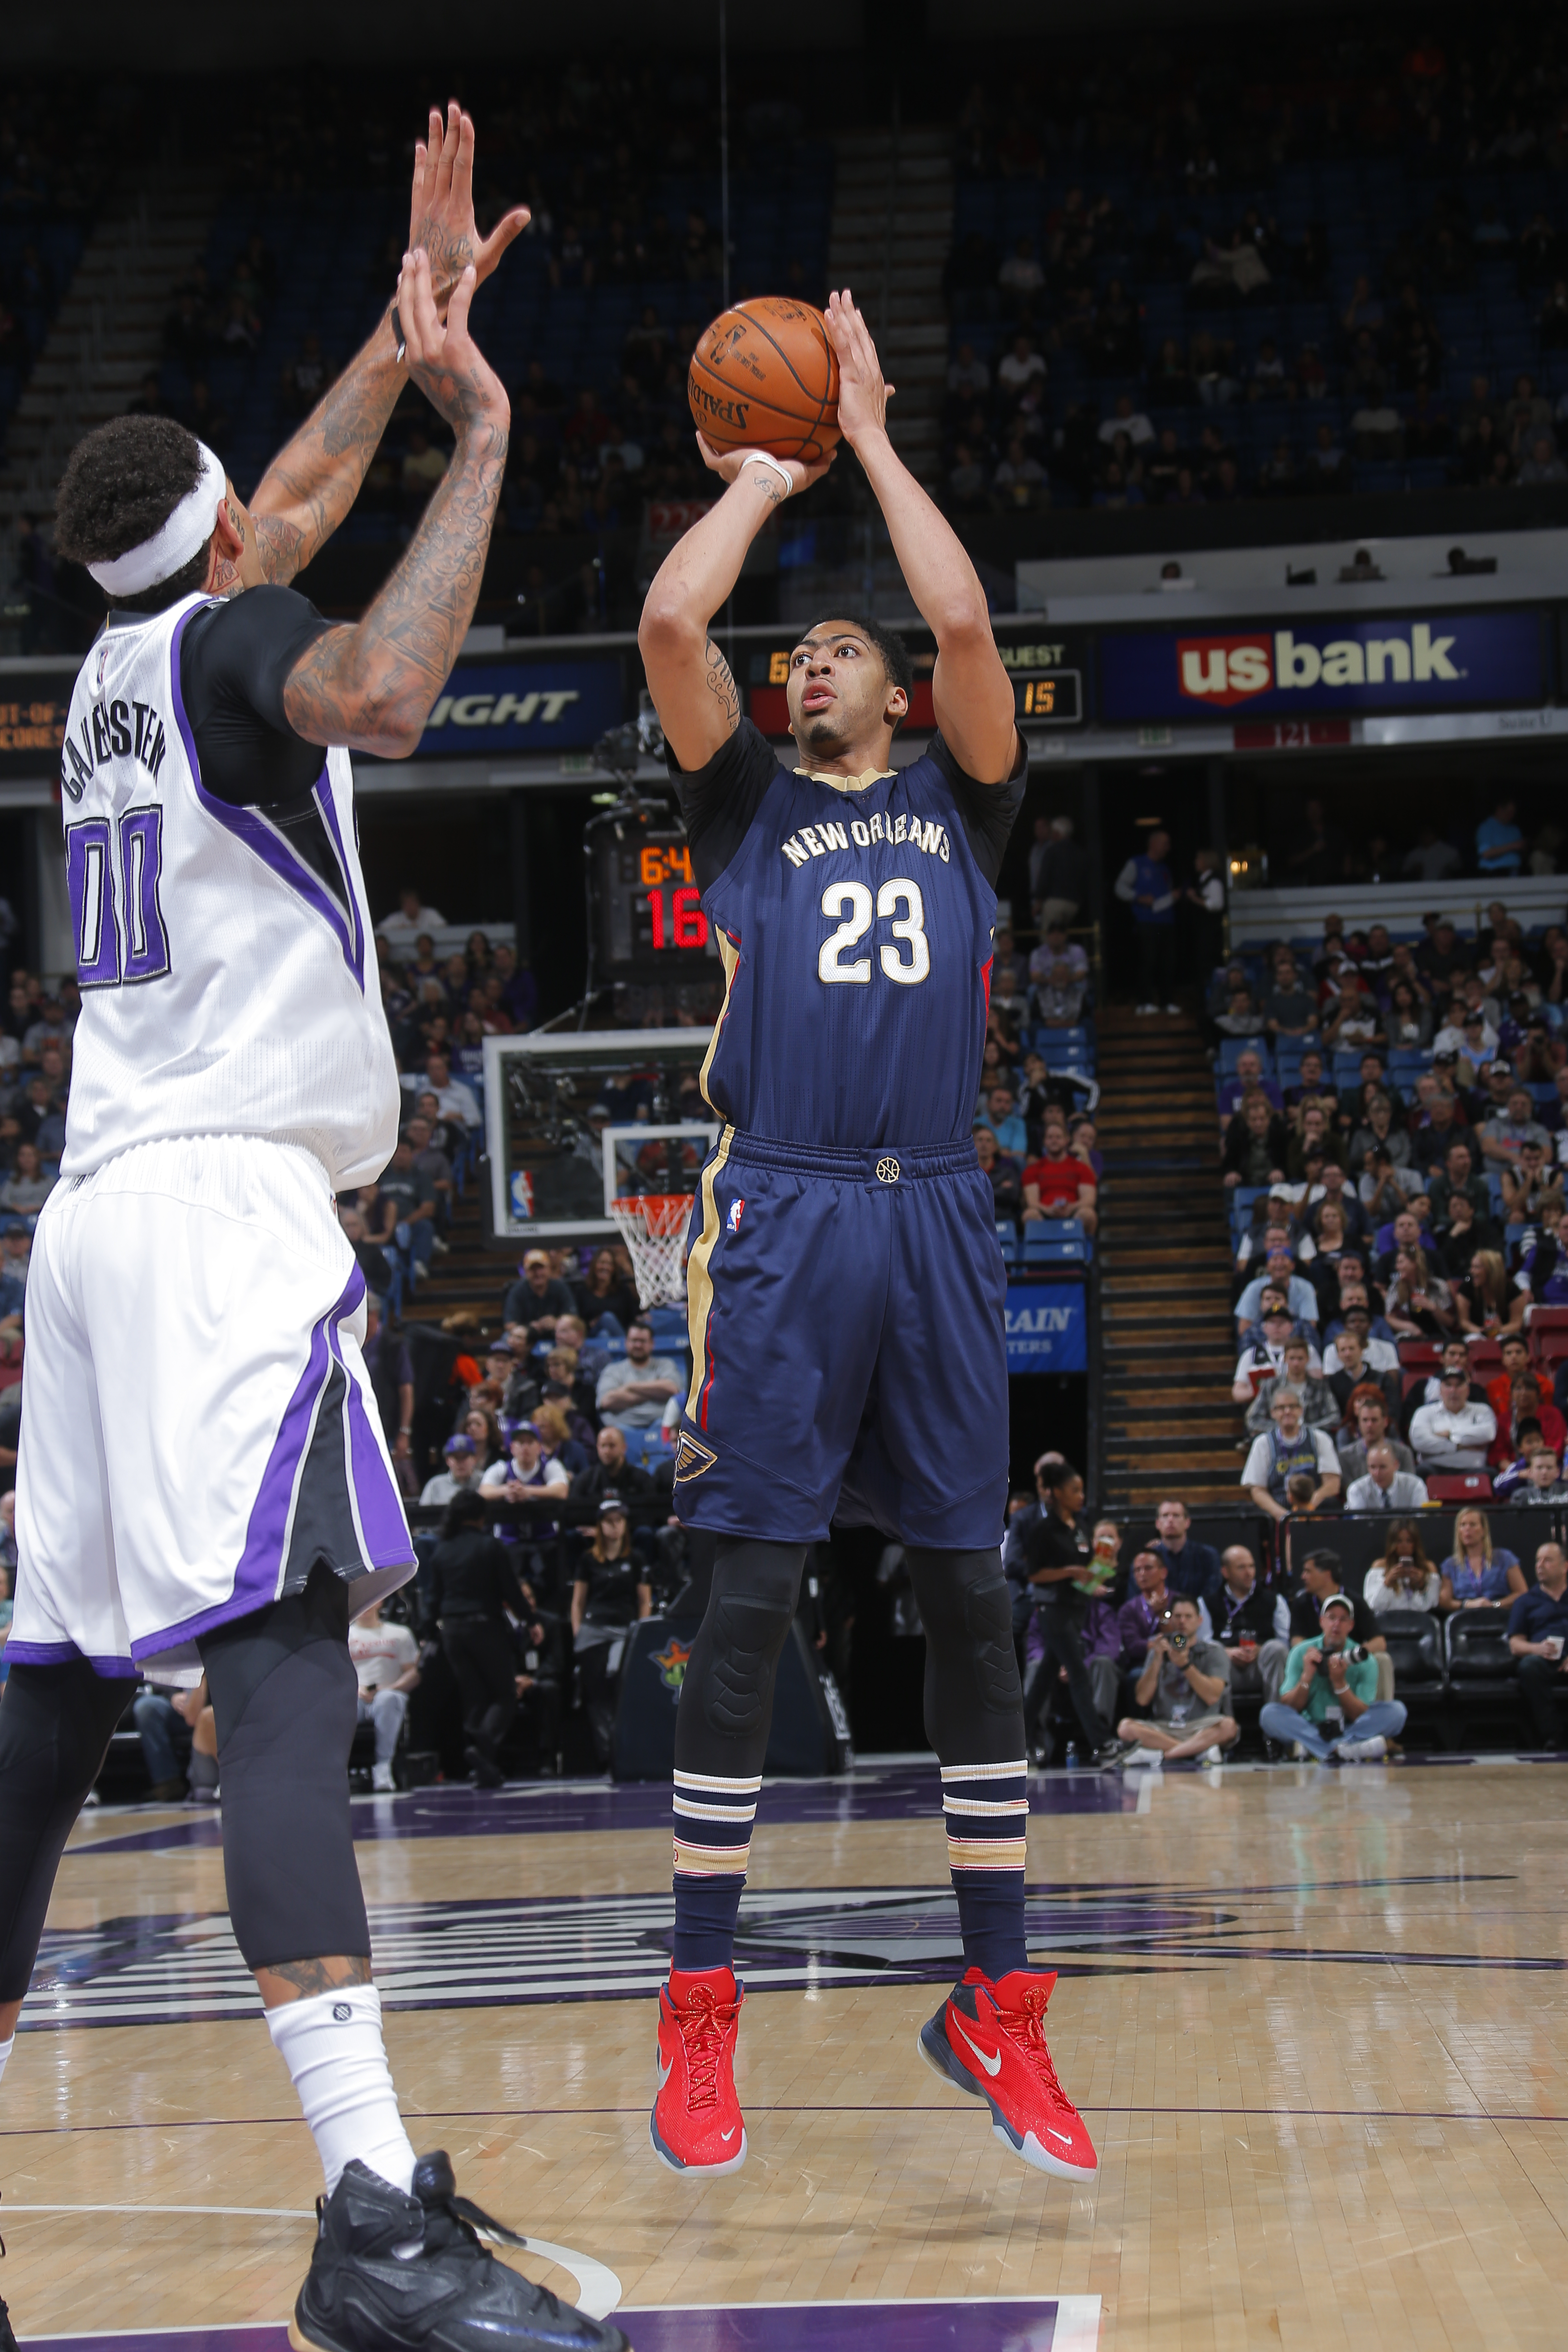 SACRAMENTO, CA  MARCH 16: Anthony Davis #23 of the New Orleans Pelicans shoots the ball against the Sacramento Kings on March 16, 2016 at Sleep Train Arena in Sacramento, California. (Photo by Rocky Widner/NBAE via Getty Images)